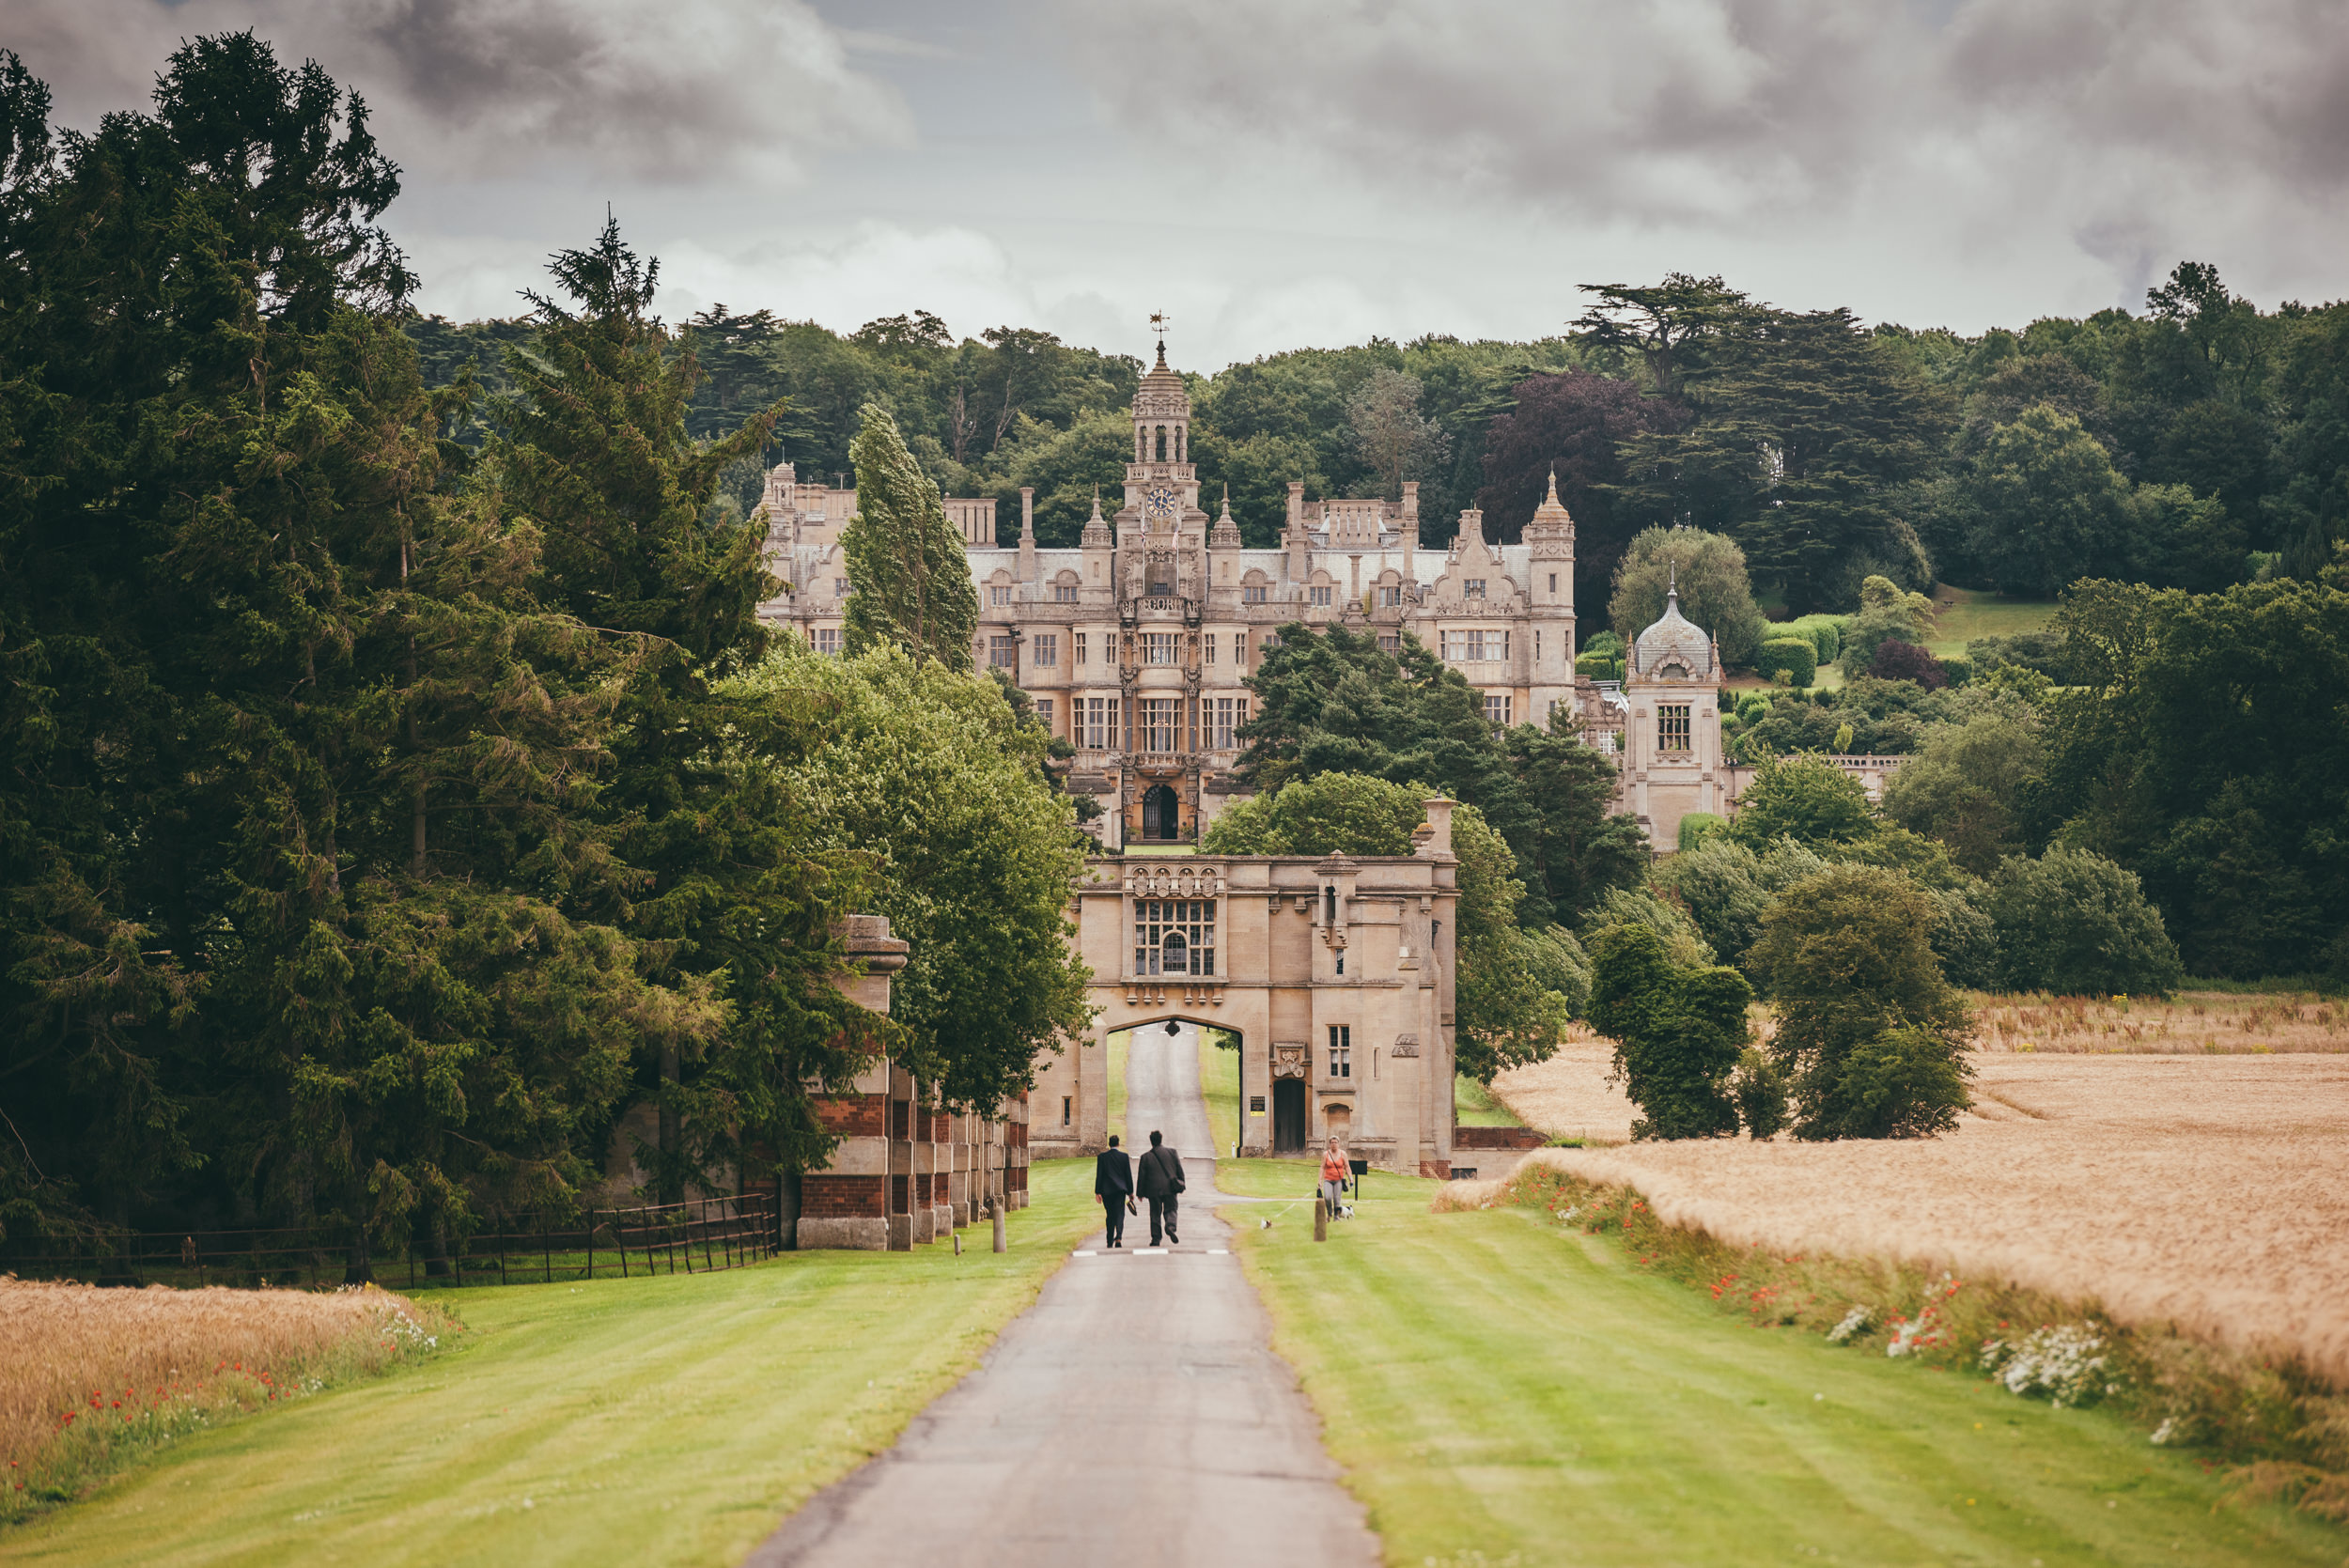 Photograph of Harlaxton Manor up the long drive